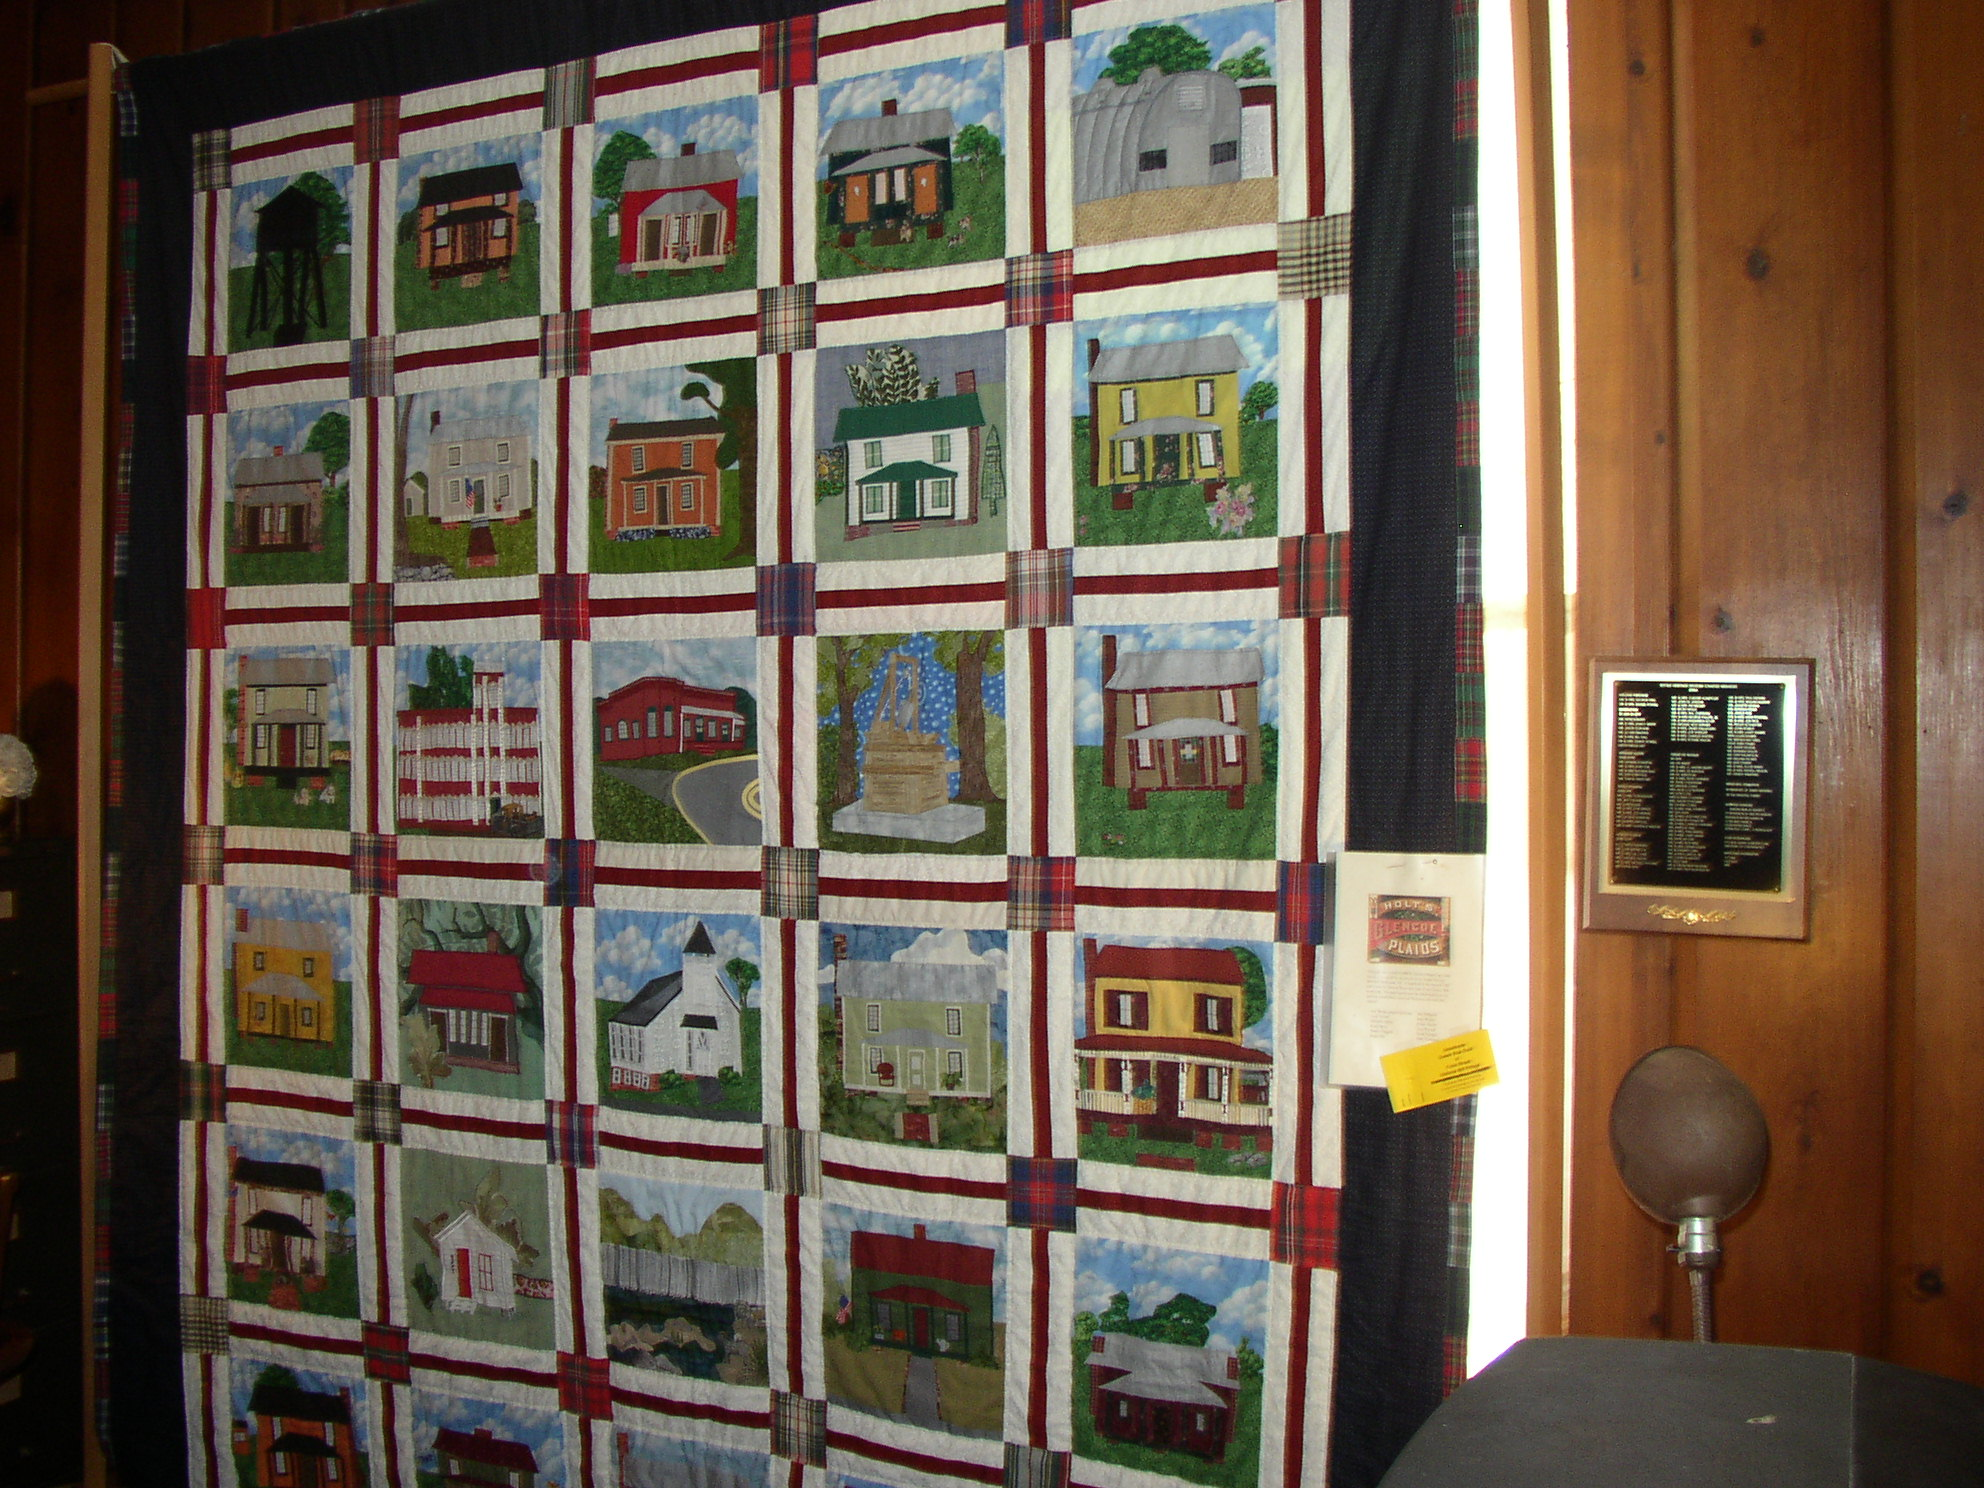 Glencoe quilt hanging at the Museum